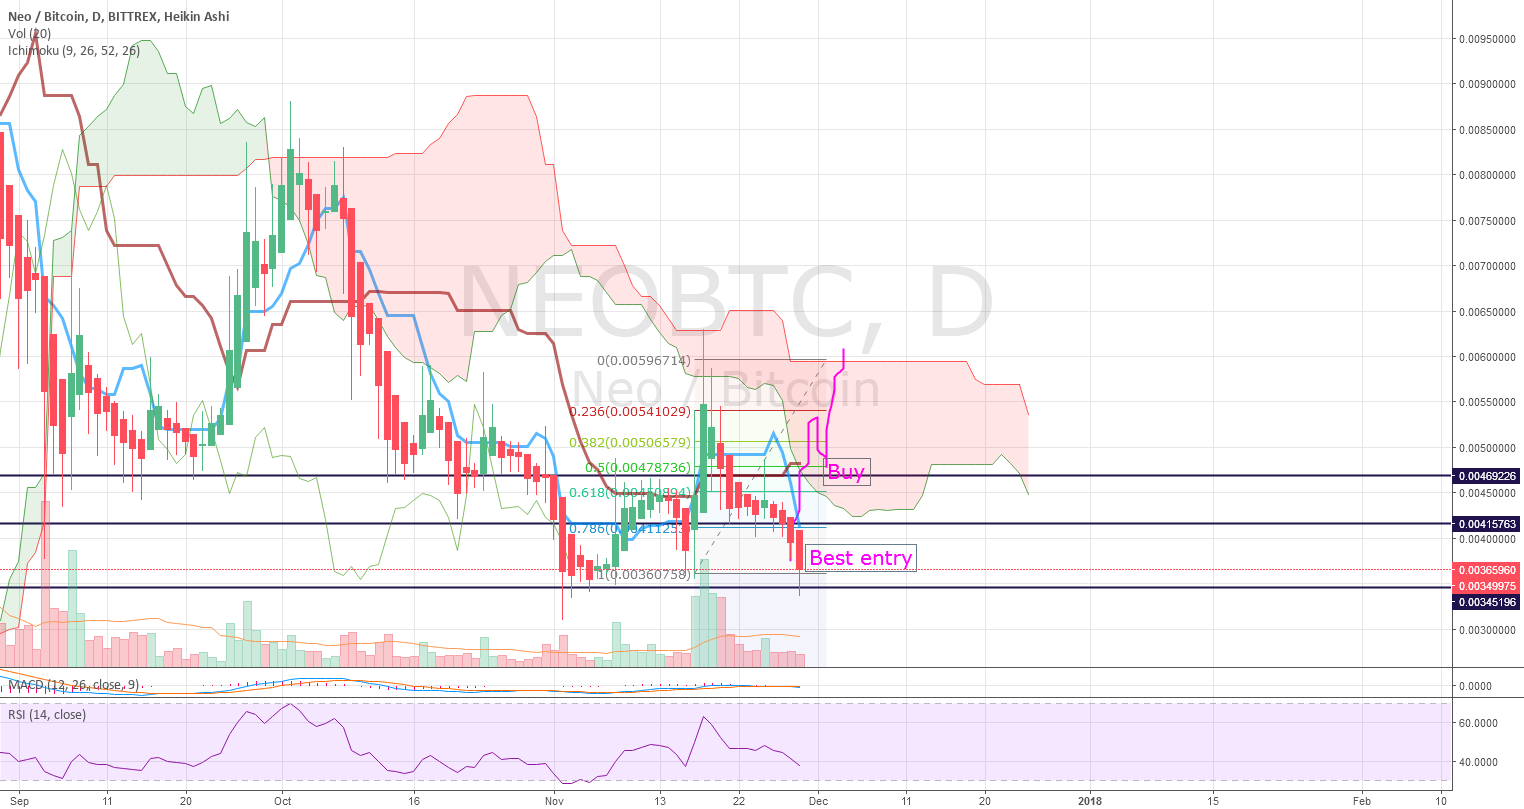 $NEO - looks ready for take off, arrived at Best entry point